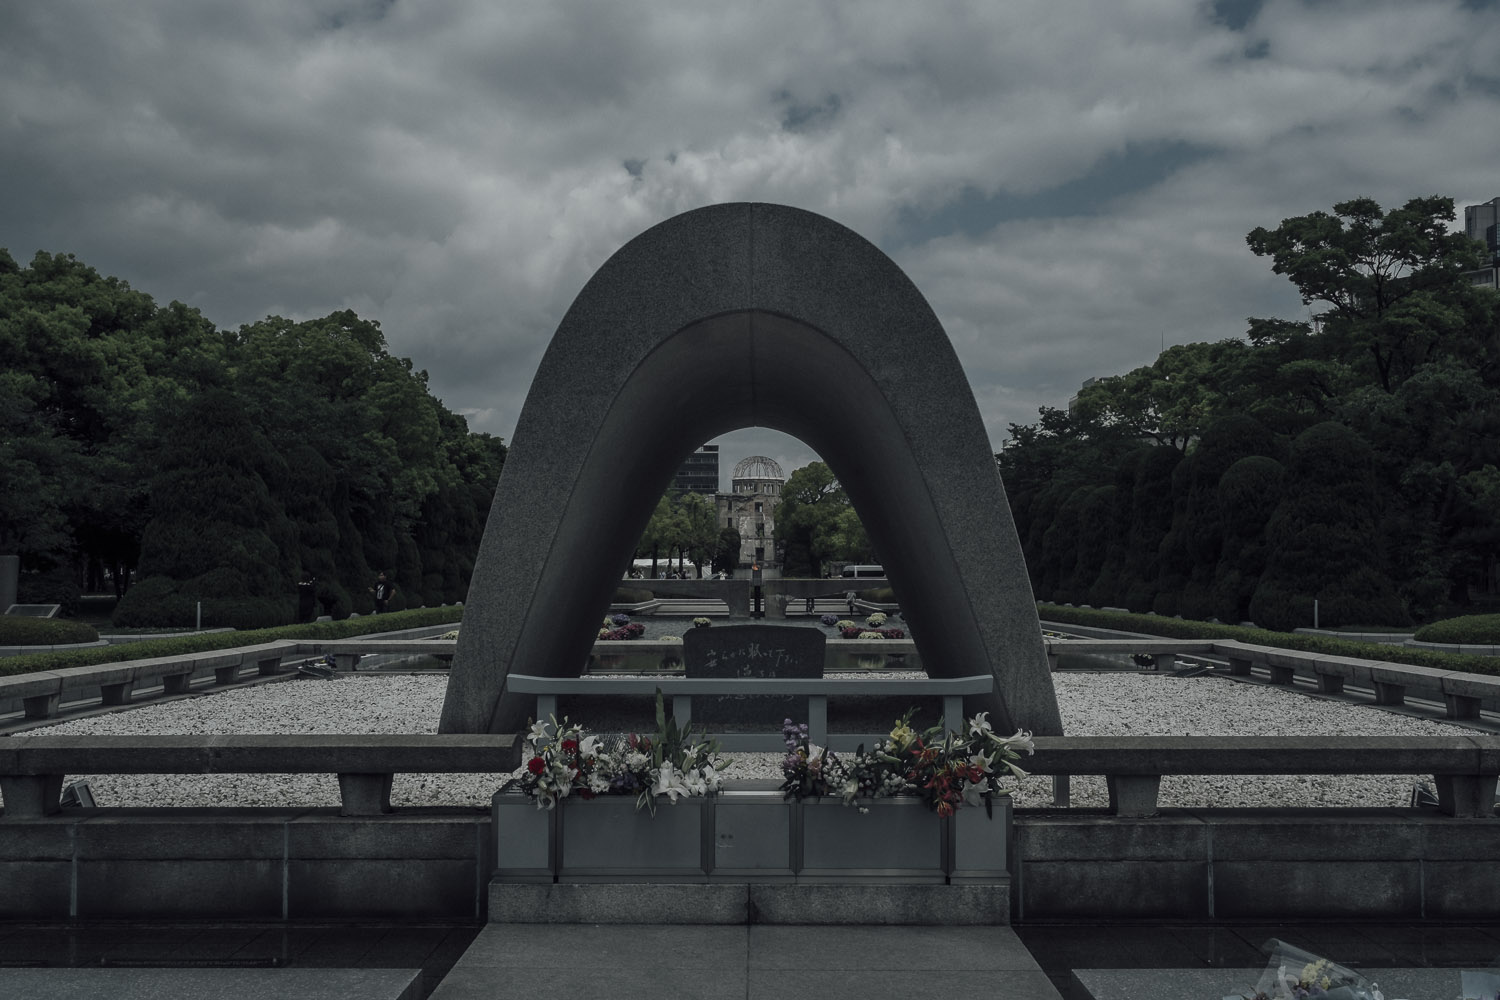 A-Bomb Dome as seen from the Peace Memorial.